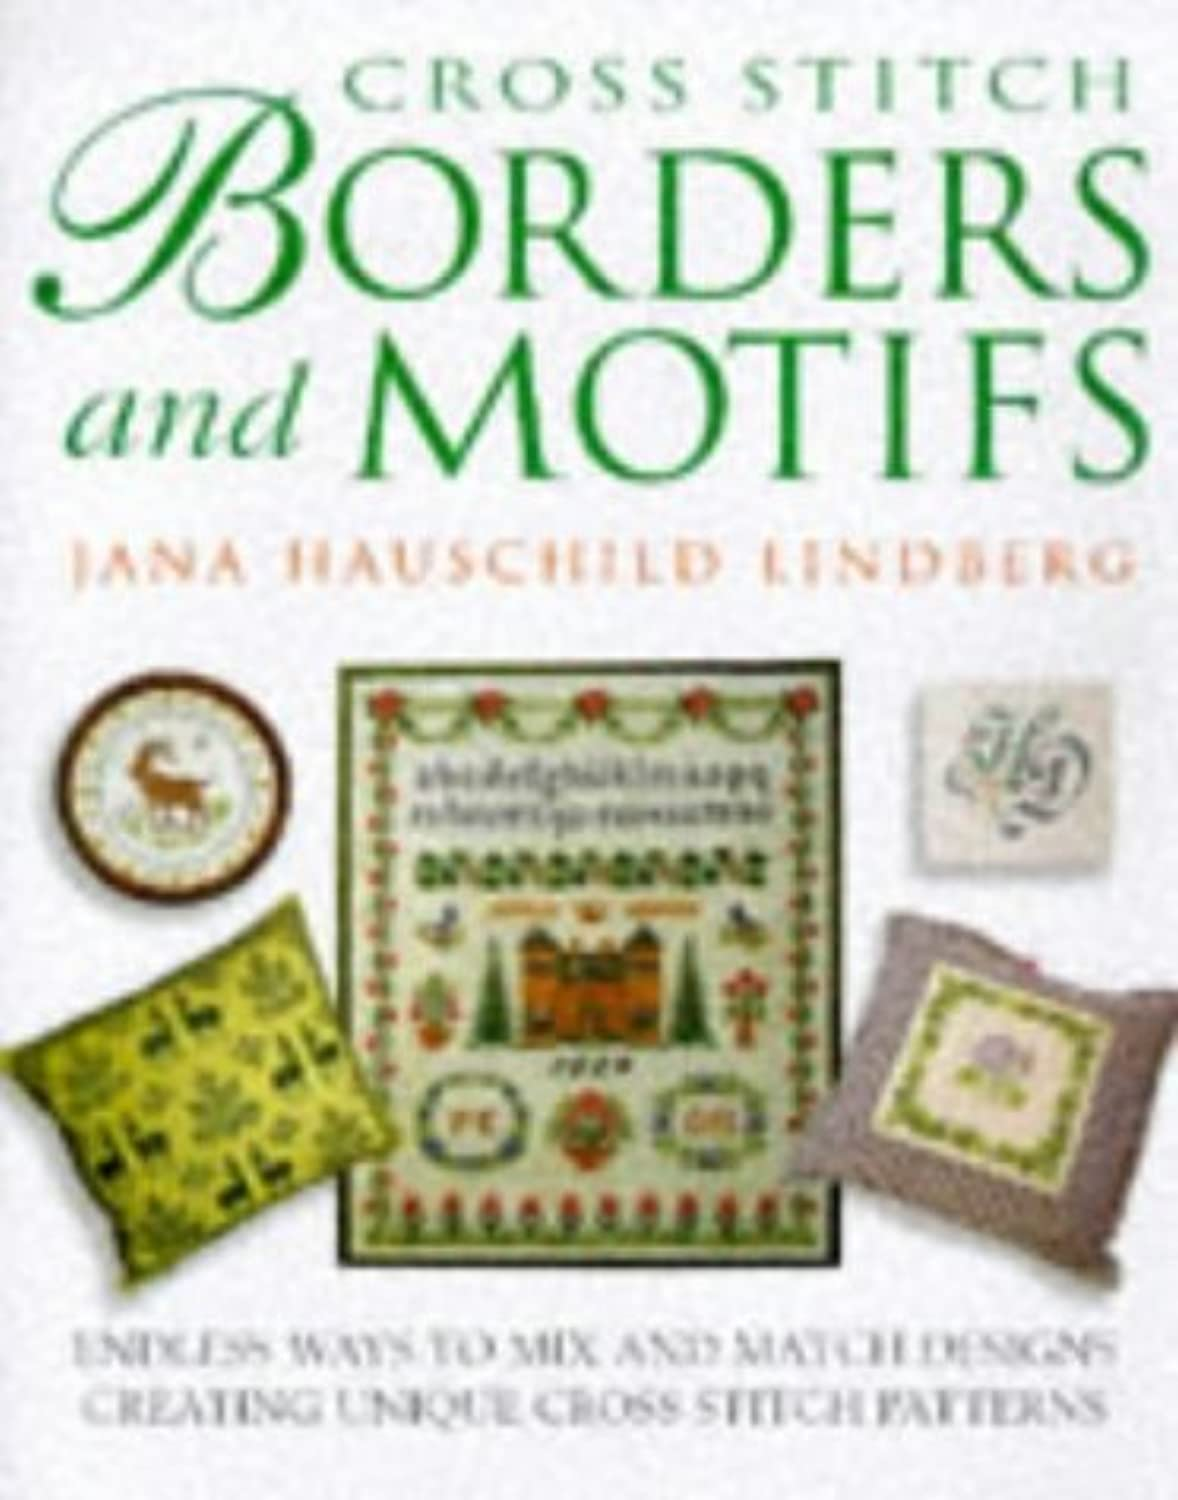 Cross Stitch Borders and Motifs: Endless Ways to Mix and Match Designs Creating Unique Cross Stitch Patterns